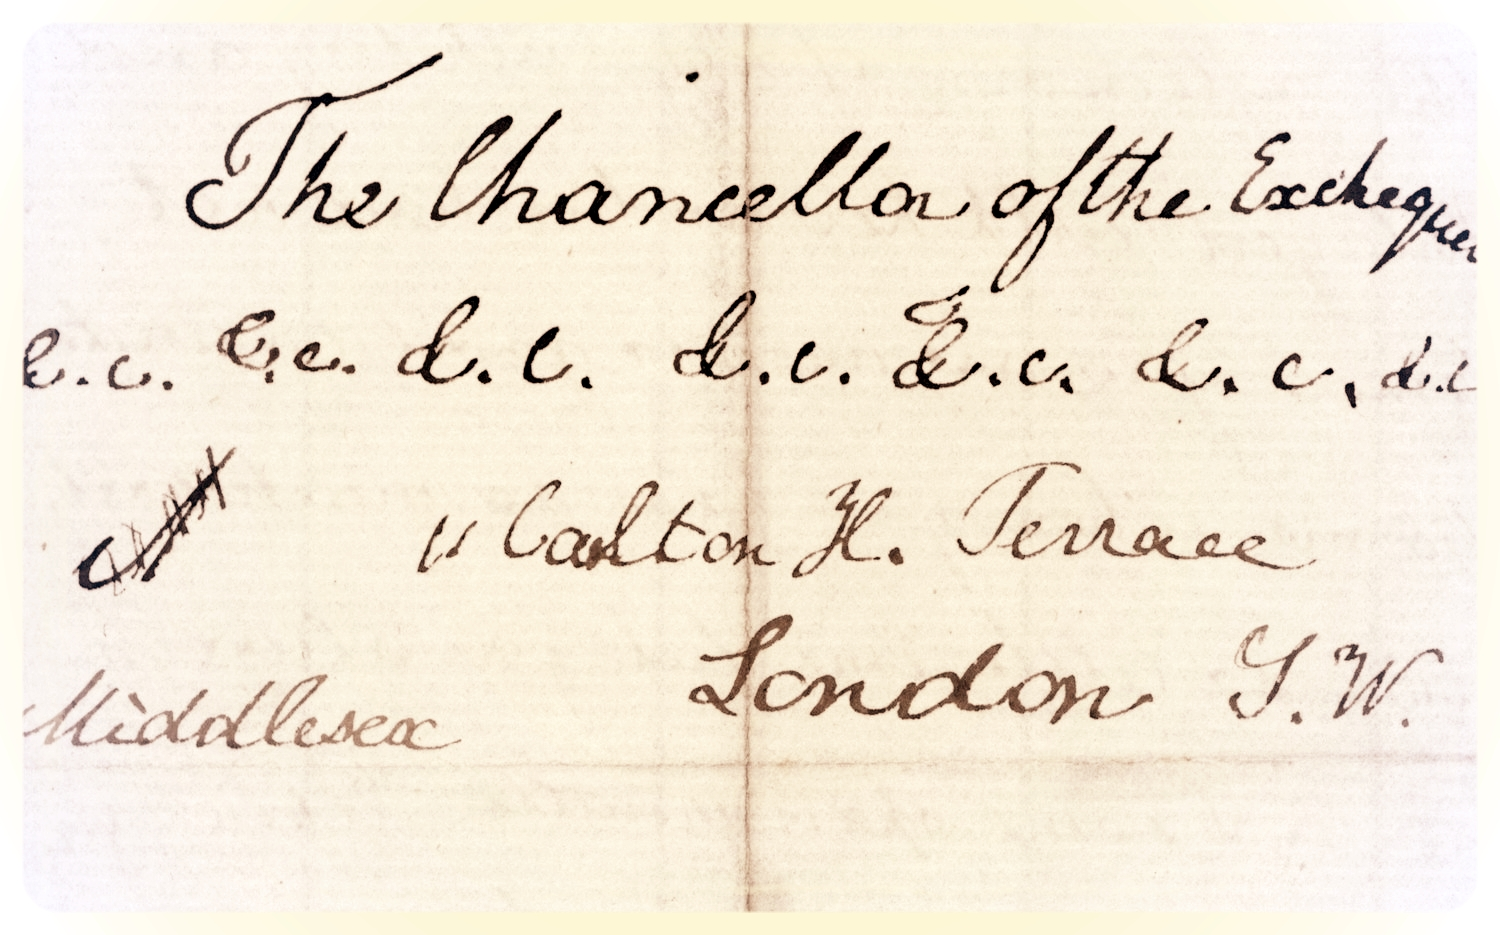 Mary Gladstone to W.E. Gladstone, 24 Nov. 1860. Flintshire Record Office, GG 603. All images used with permission.